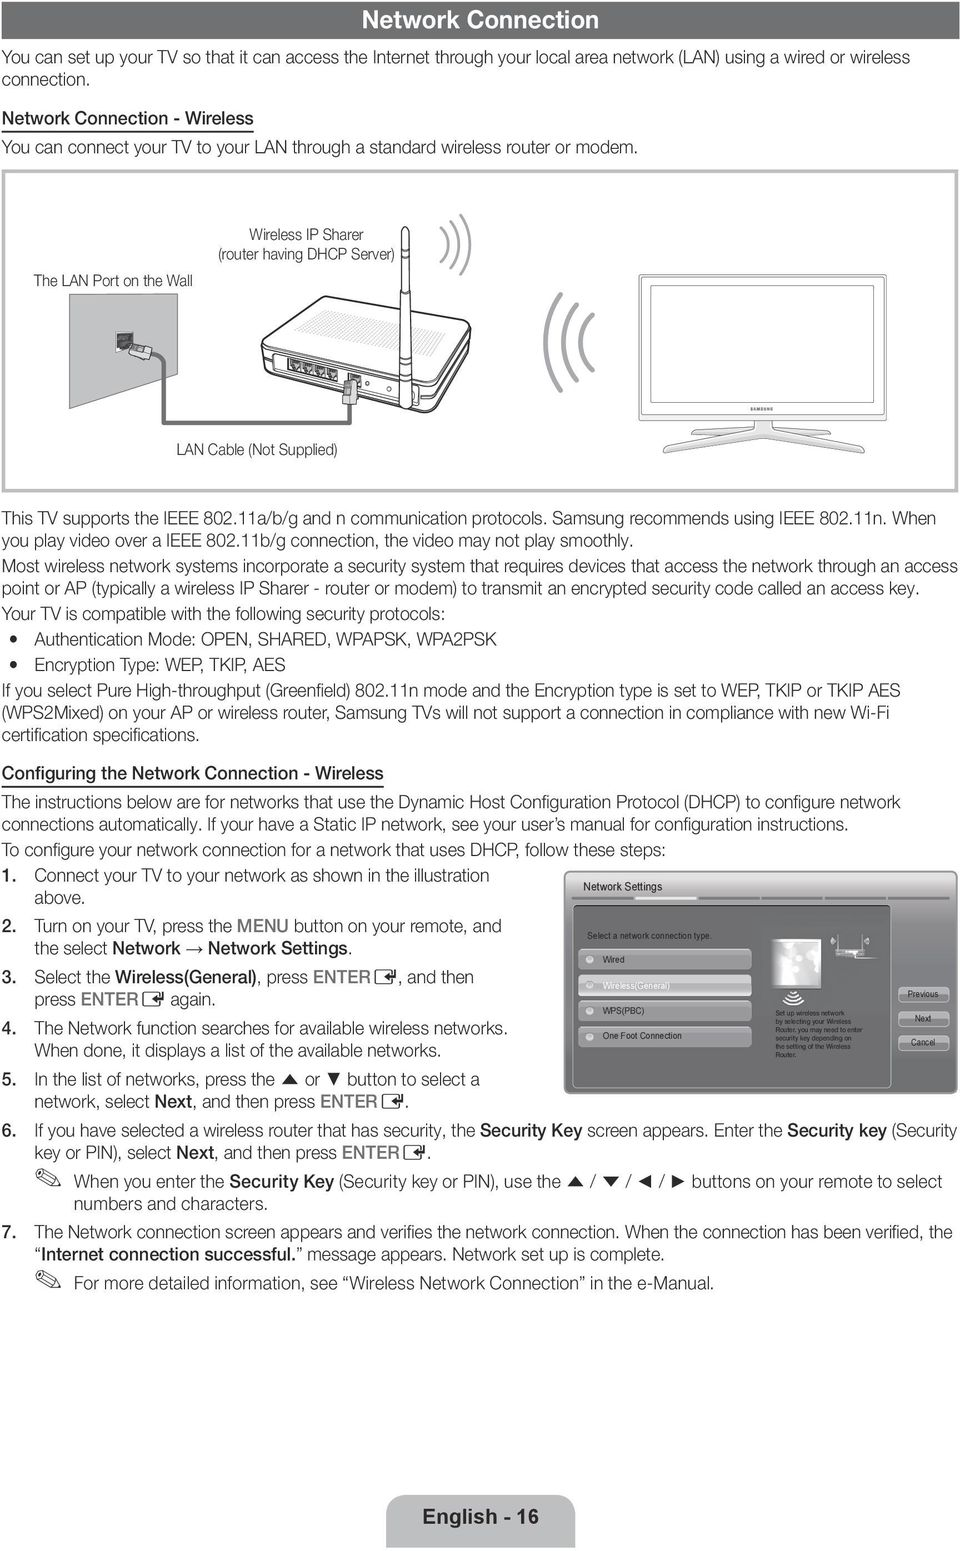 The LAN Port on the Wall Wireless IP Sharer (router having DHCP Server) LAN Cable (Not Supplied) This TV supports the IEEE 802.11a/b/g and n communication protocols. Samsung recommends using IEEE 802.